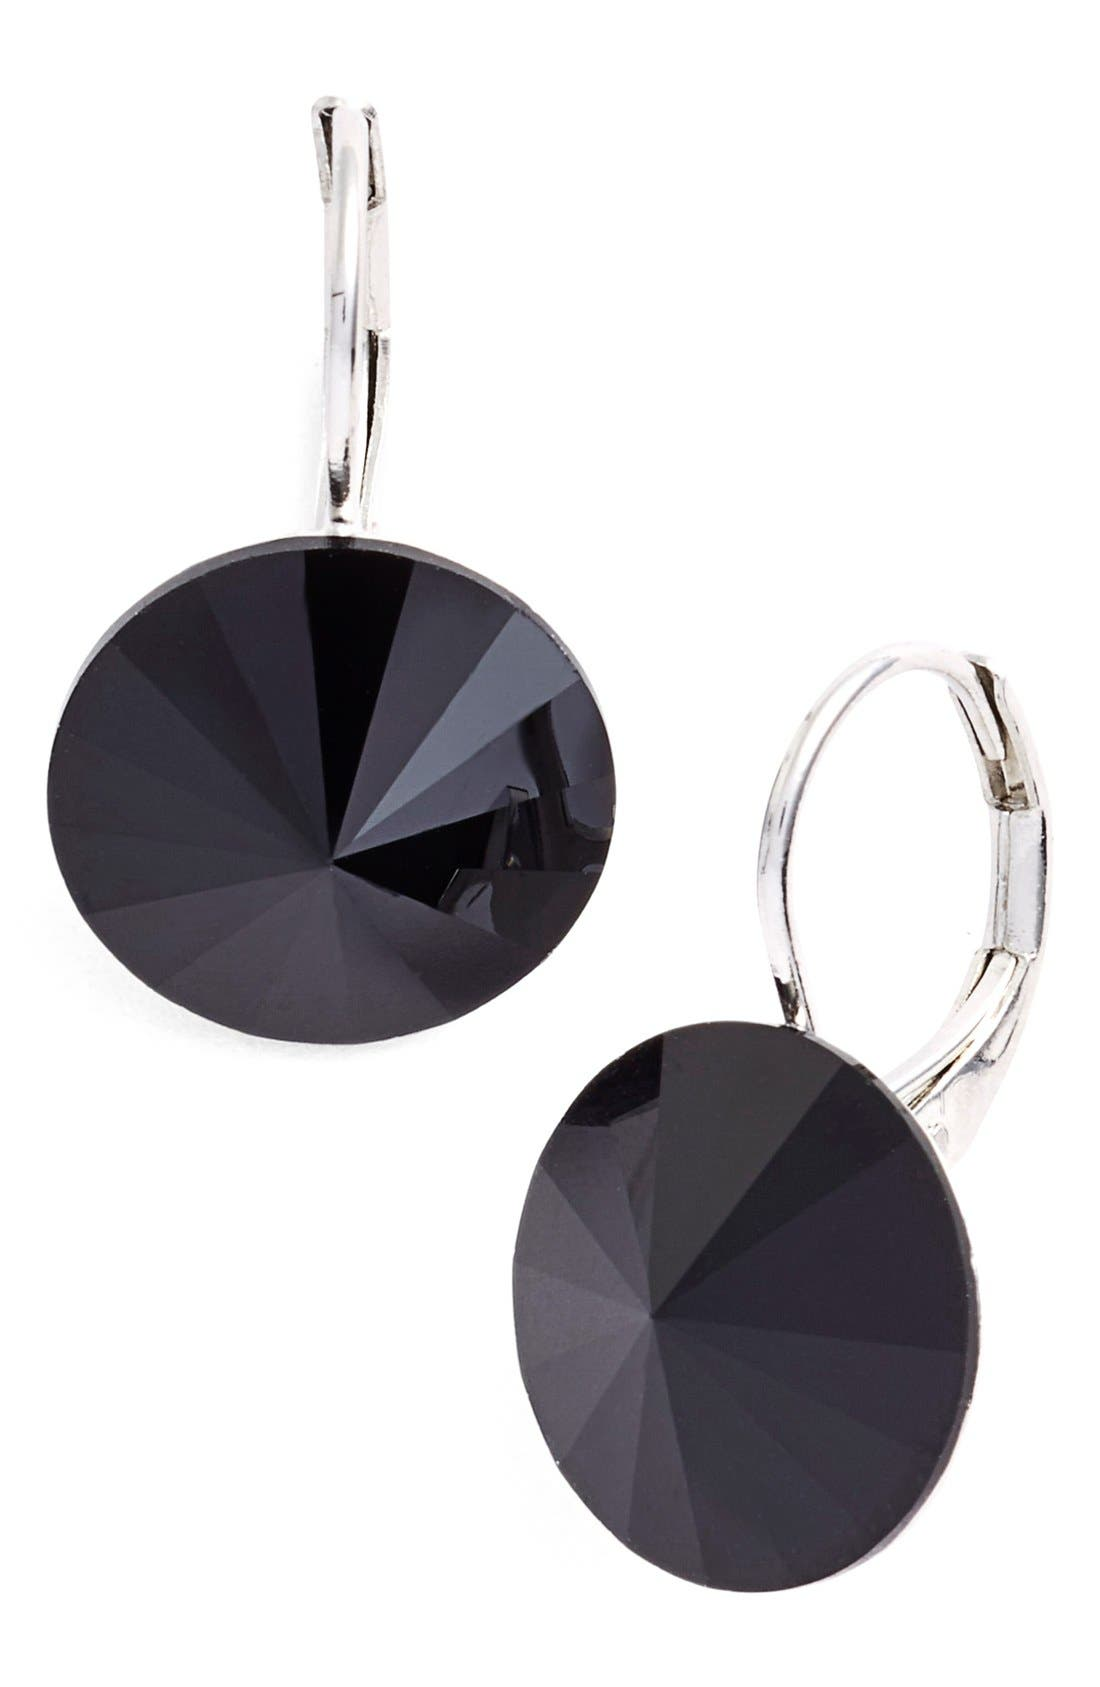 L. ERICKSON 'Celeste' Round Crystal Drop Earrings